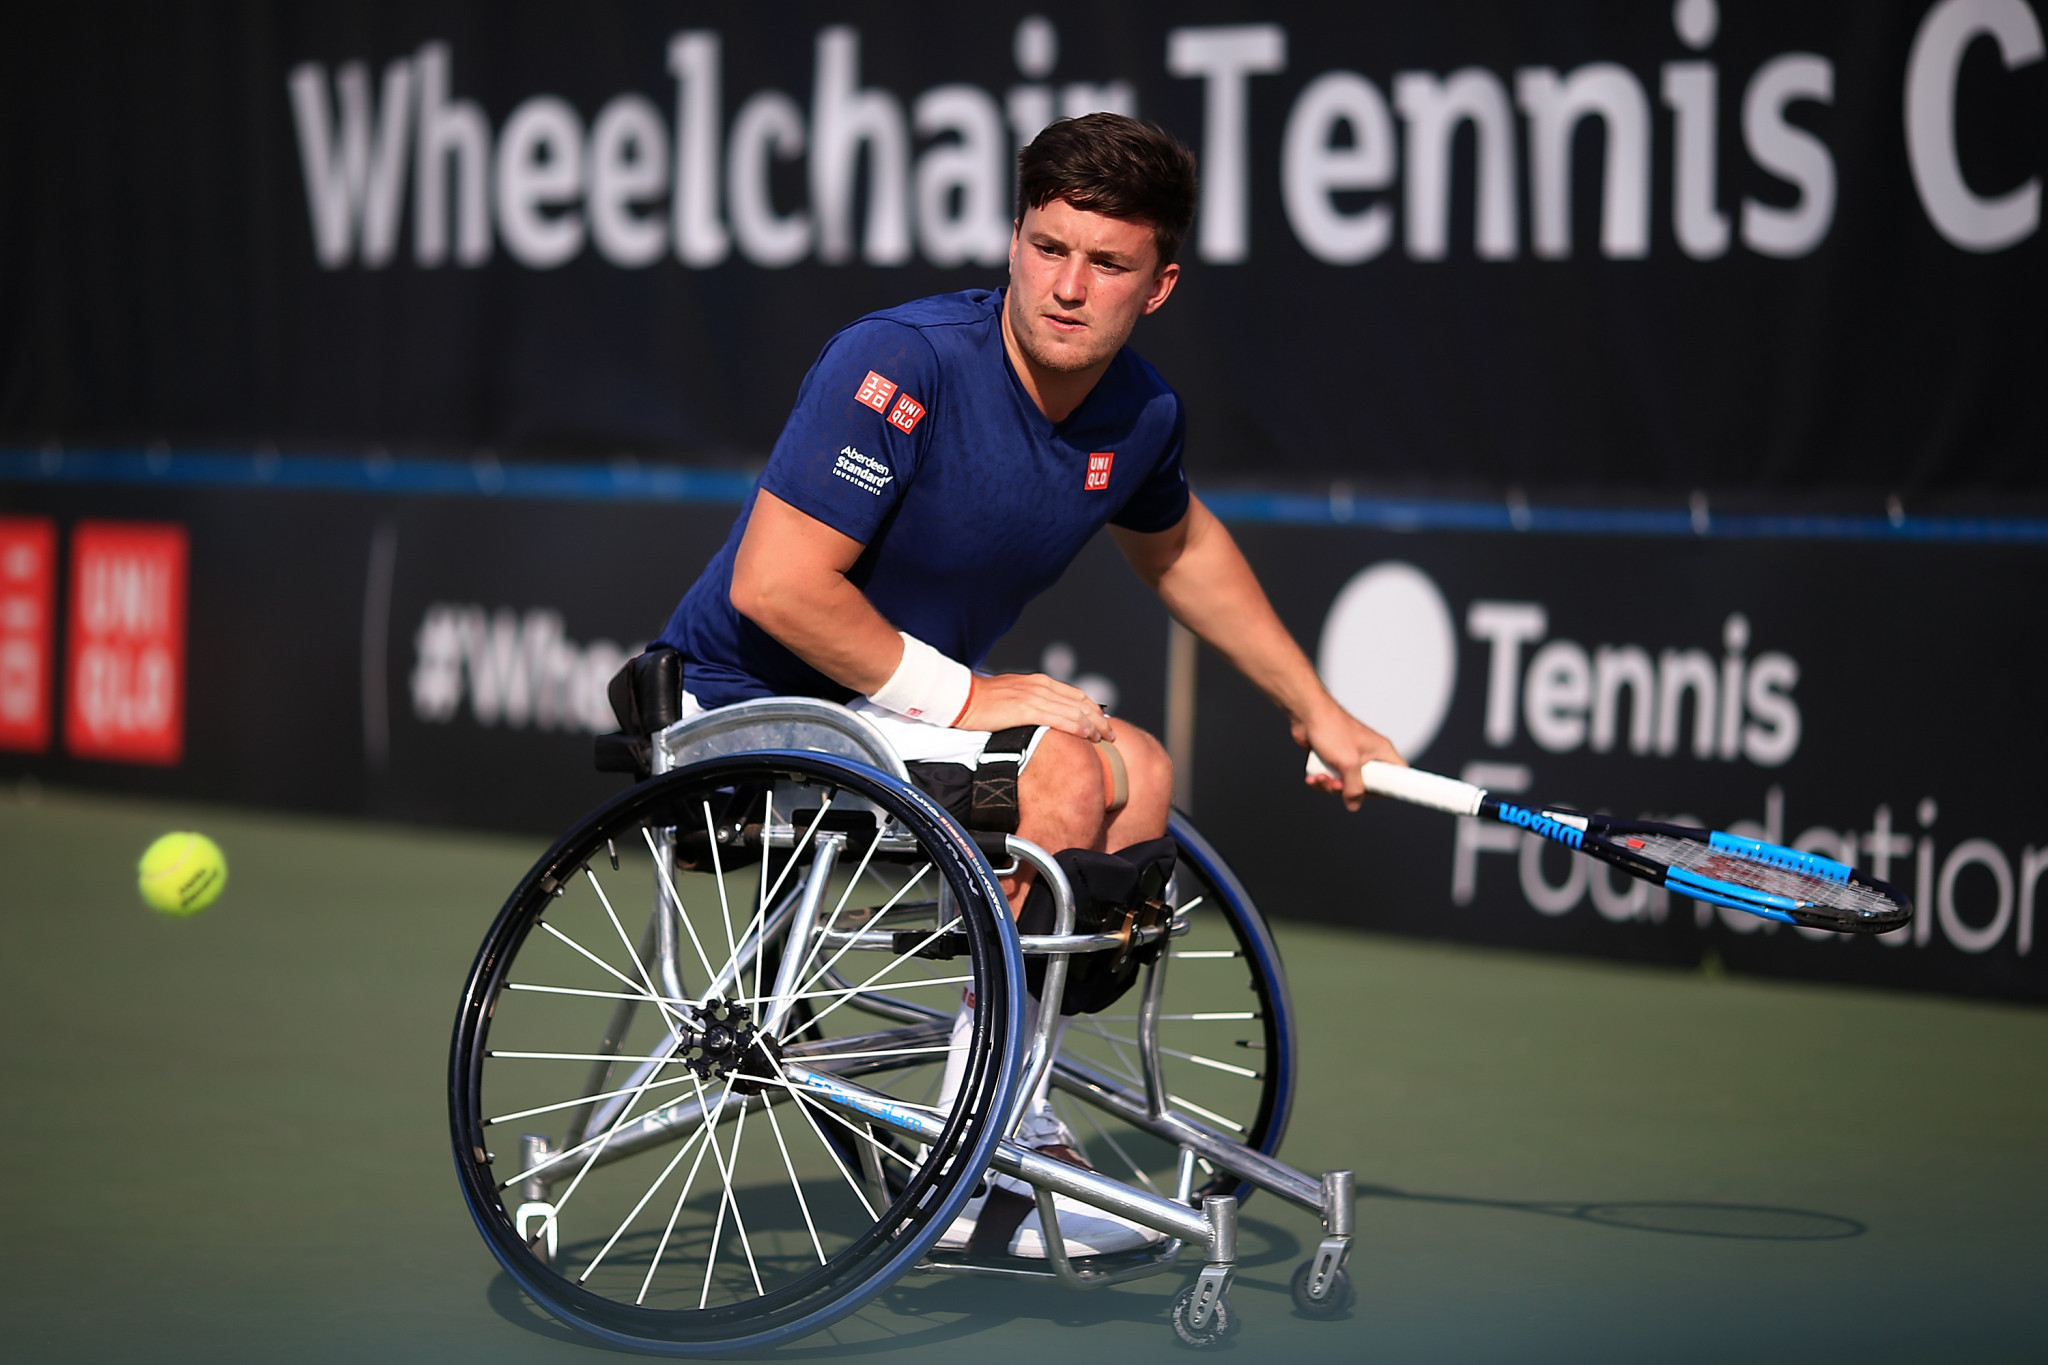 Great Britain's Gordon Reid beat higher-seeded opponent Joachim Gérard of Belgium today to secure his place in the men's singles semi-finals at the Bendigo Wheelchair Tennis Open in Australia ©Getty Images